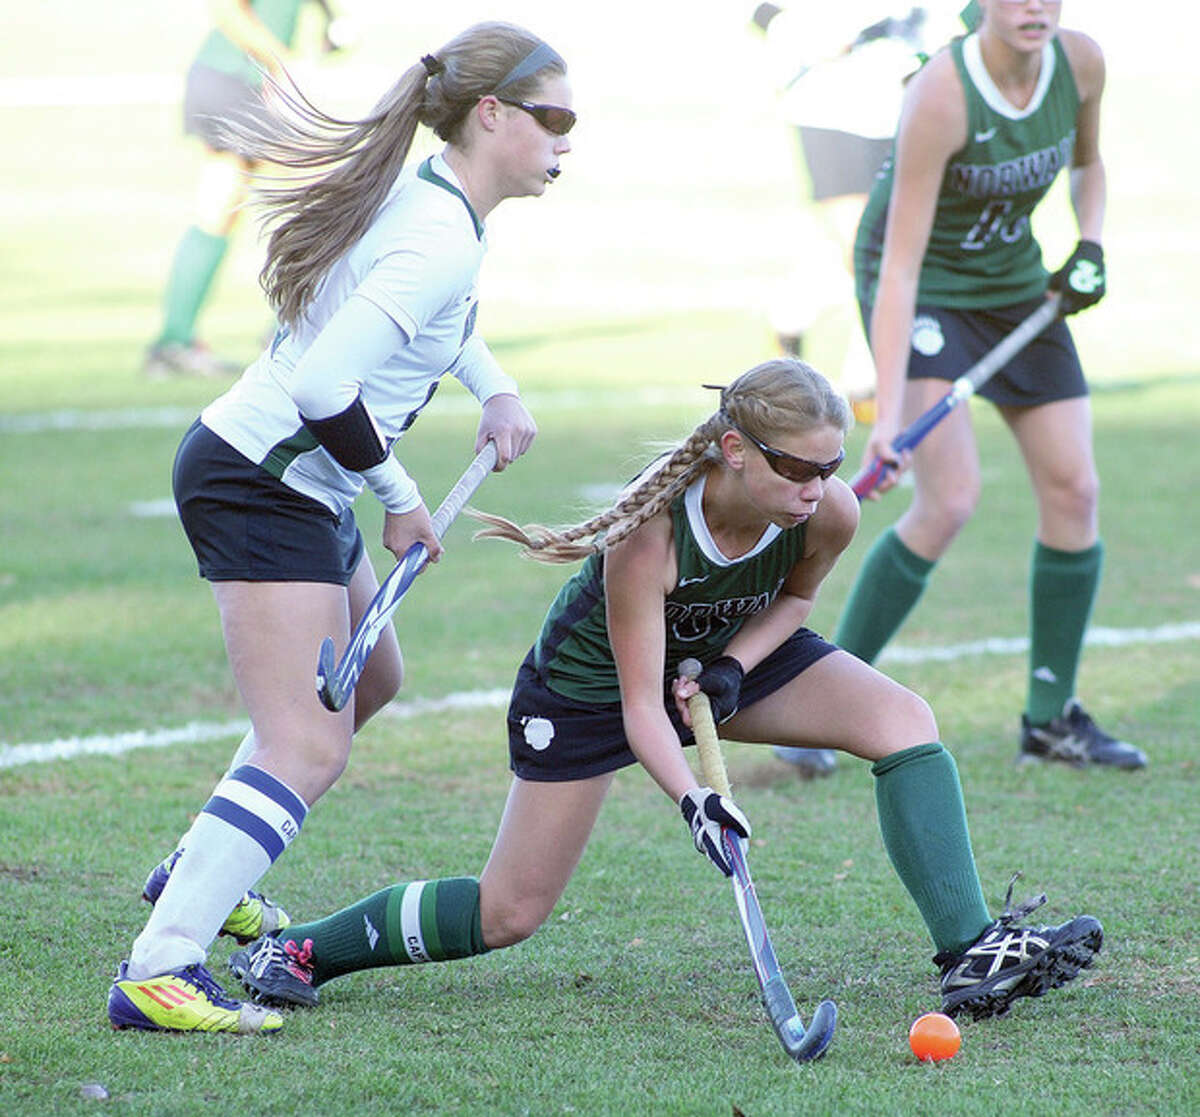 Hour photo/John Nash Norwalk's Greta McConnell, bottom, gets ready to push the ball up the field as New Milford's Corinne Heymach trails during Monday's Class LL prelim game. New Milford won, 1-0, ending the Bears season.